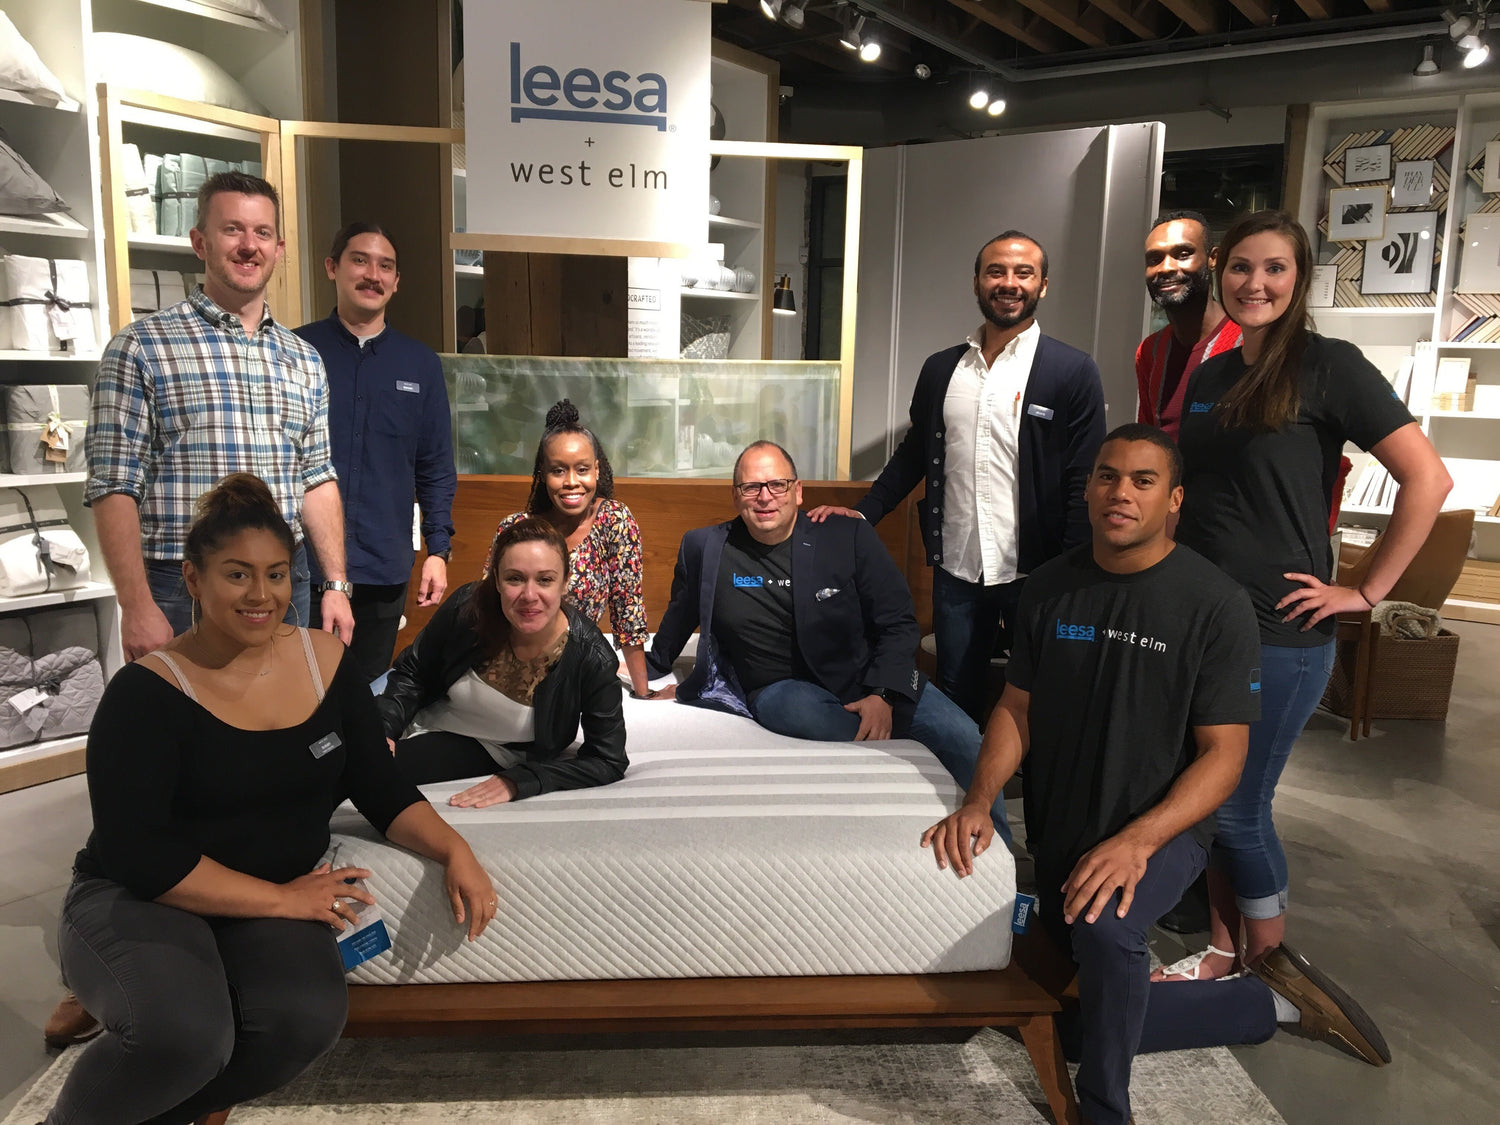 Leesa and West Elm team members kneeling around Leesa original mattress on display in a west elm store